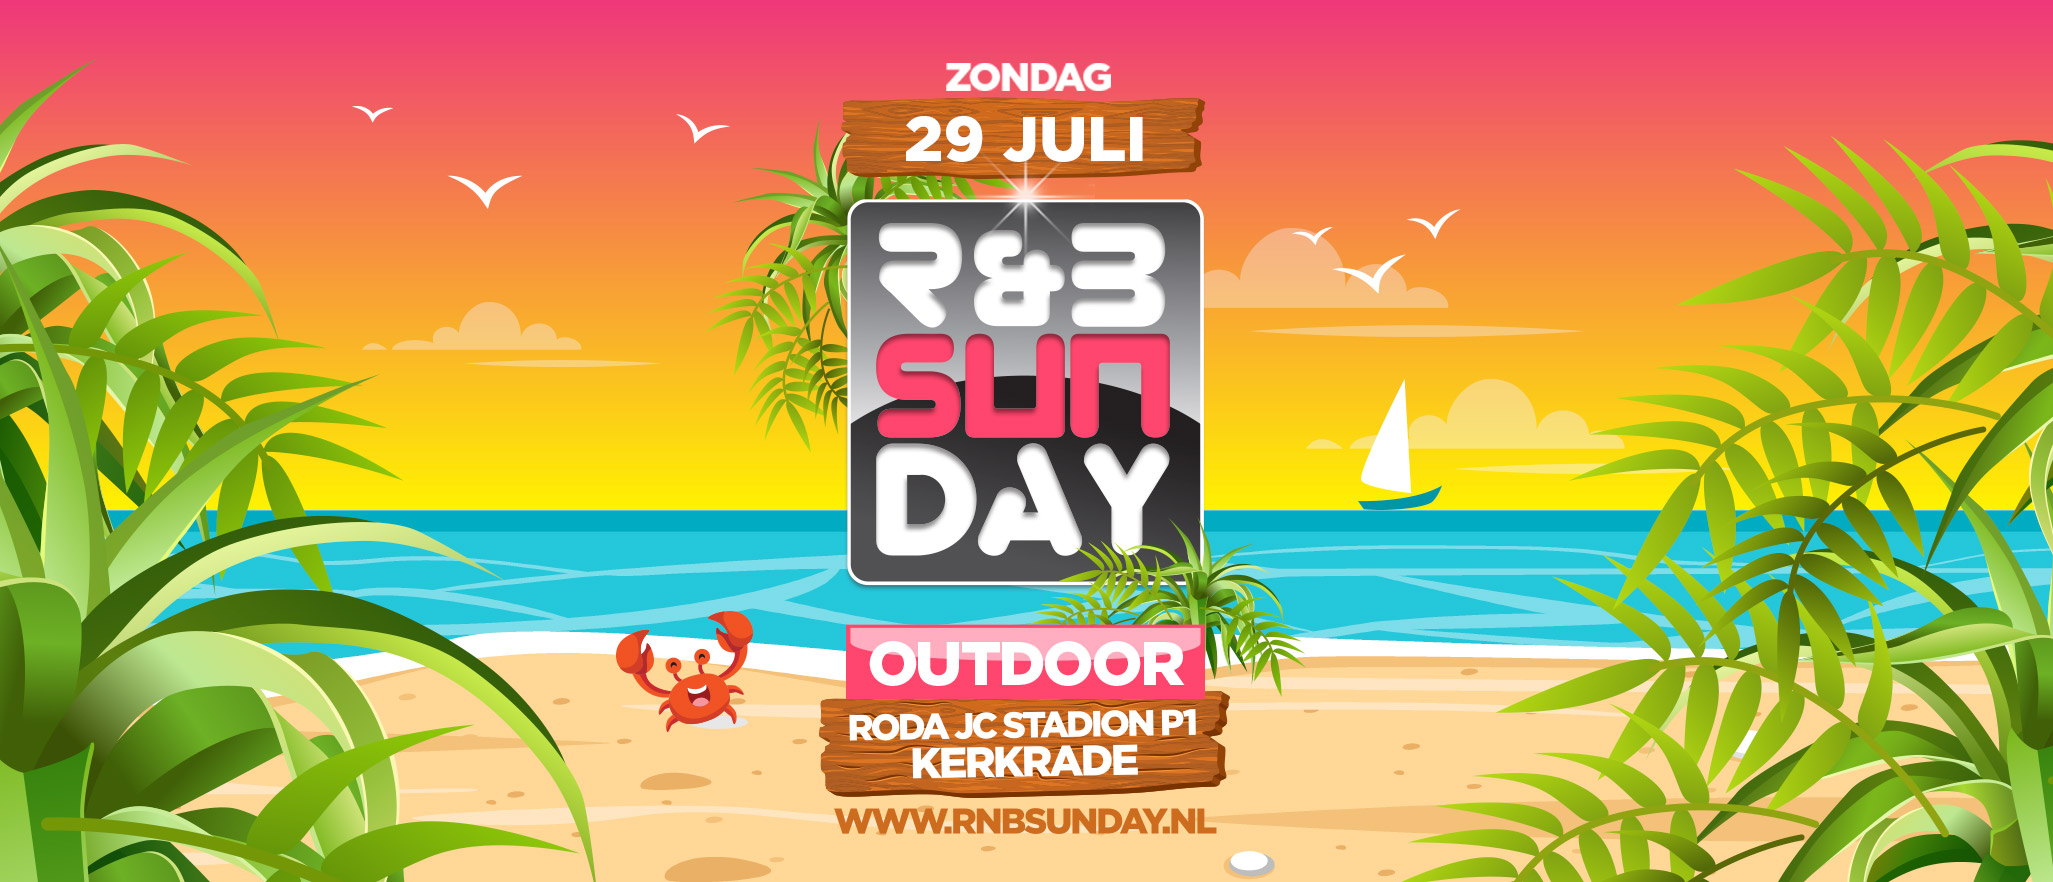 R&B Sunday Outdoor 2018 | Roda JC Stadion Kerkrade